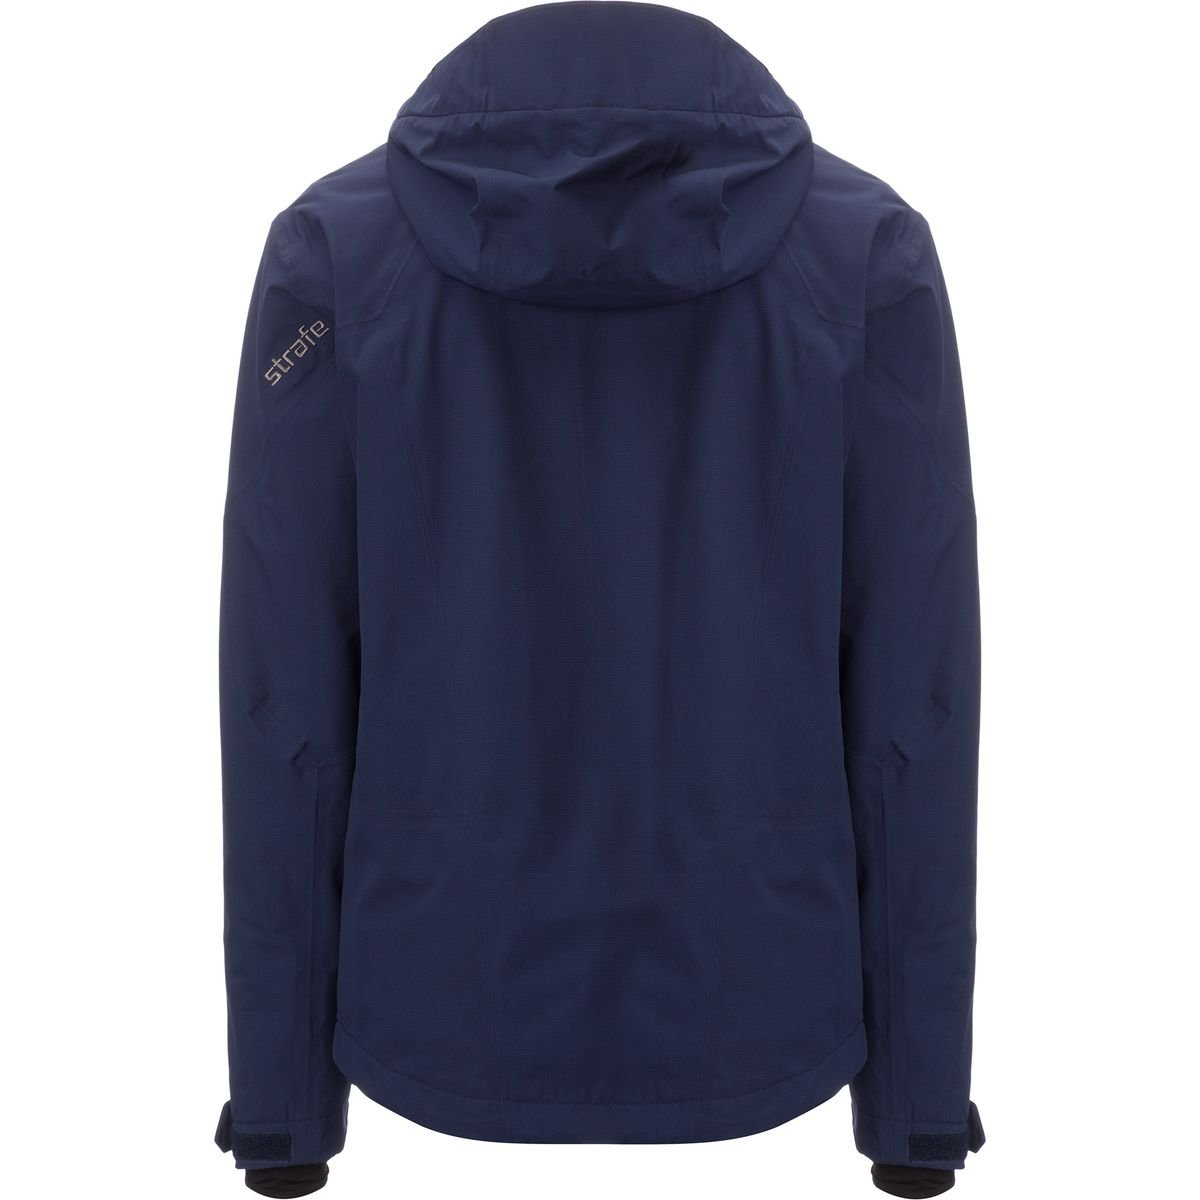 Amazon.com : Strafe Outerwear Highlands Jacket - Mens : Sports & Outdoors